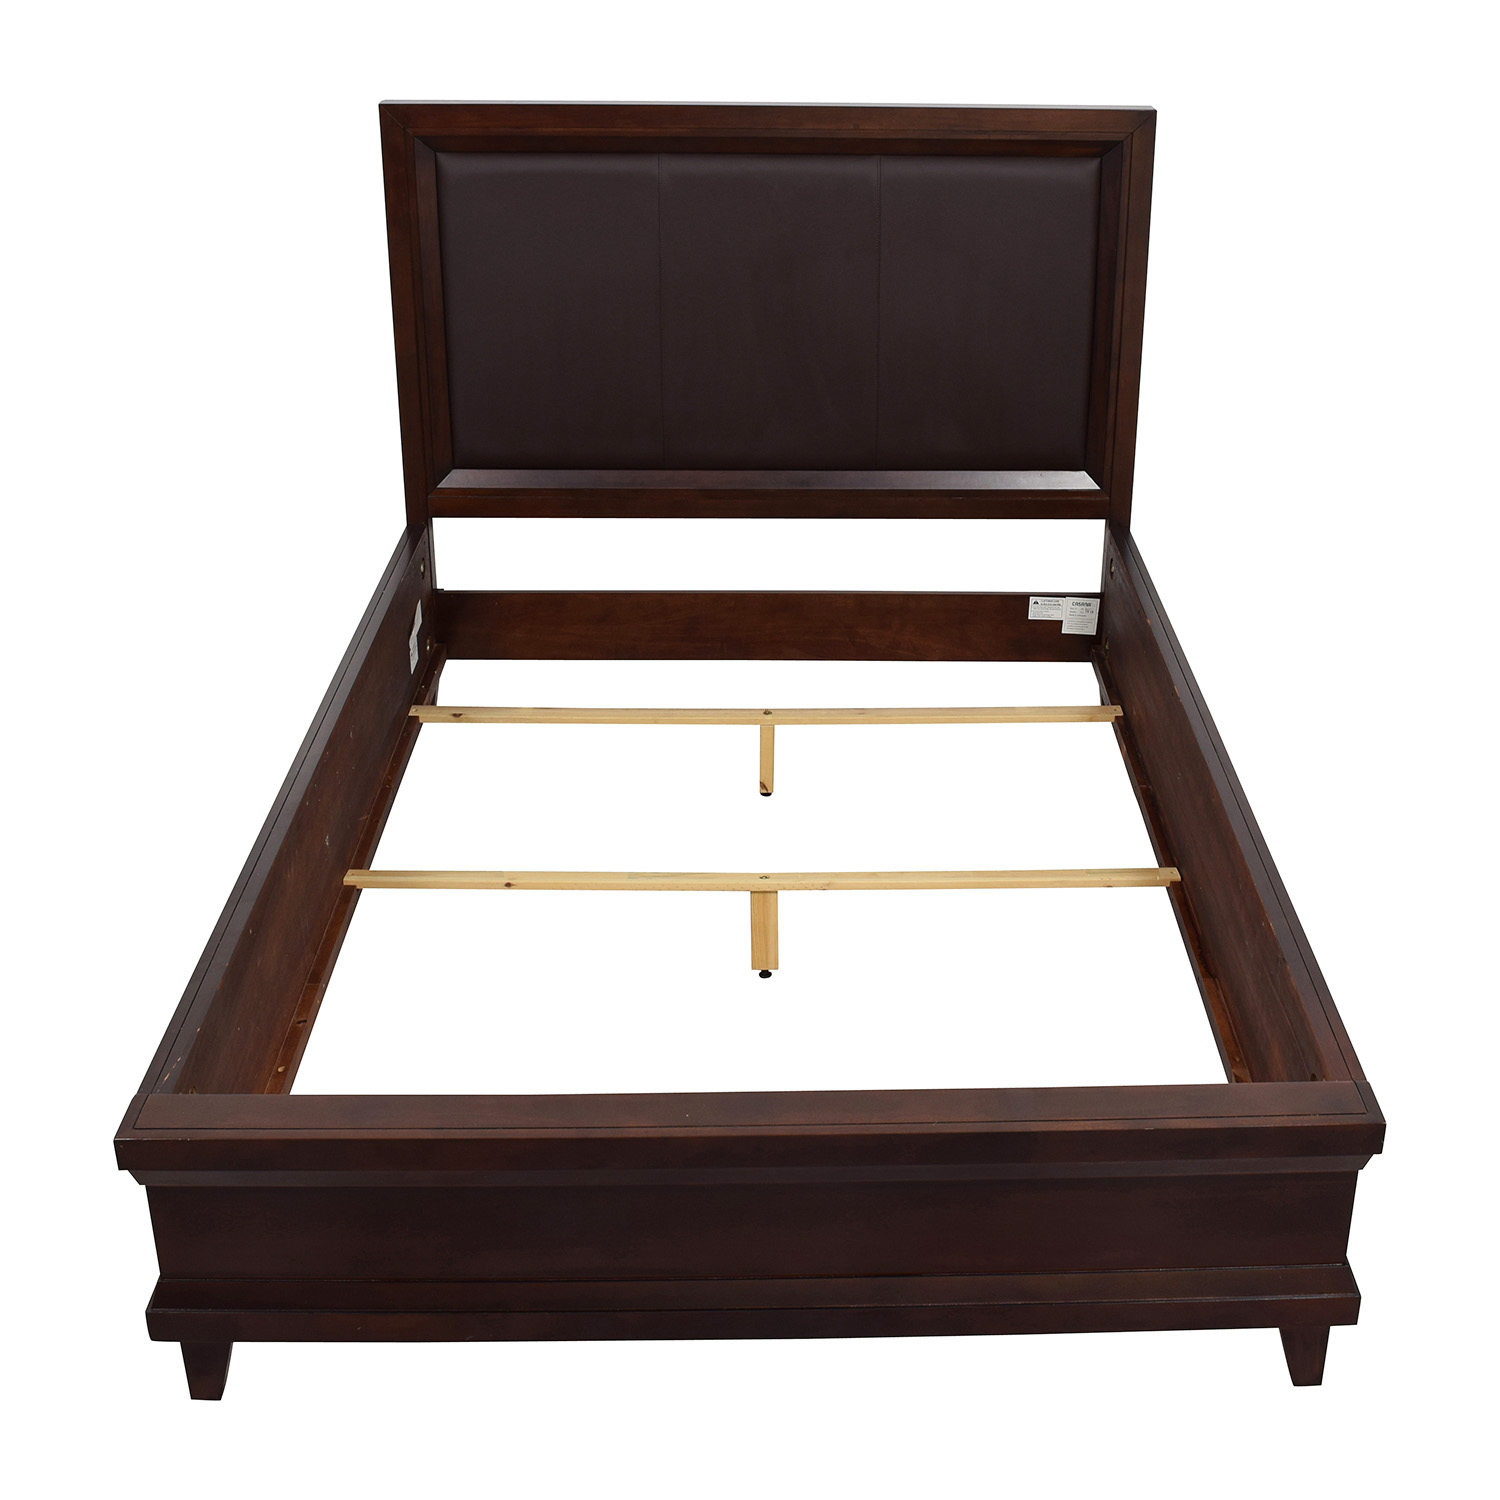 buy raymour and flanigan dark brown queen bed frame raymour and flanigan - Where Can I Buy Bed Frames